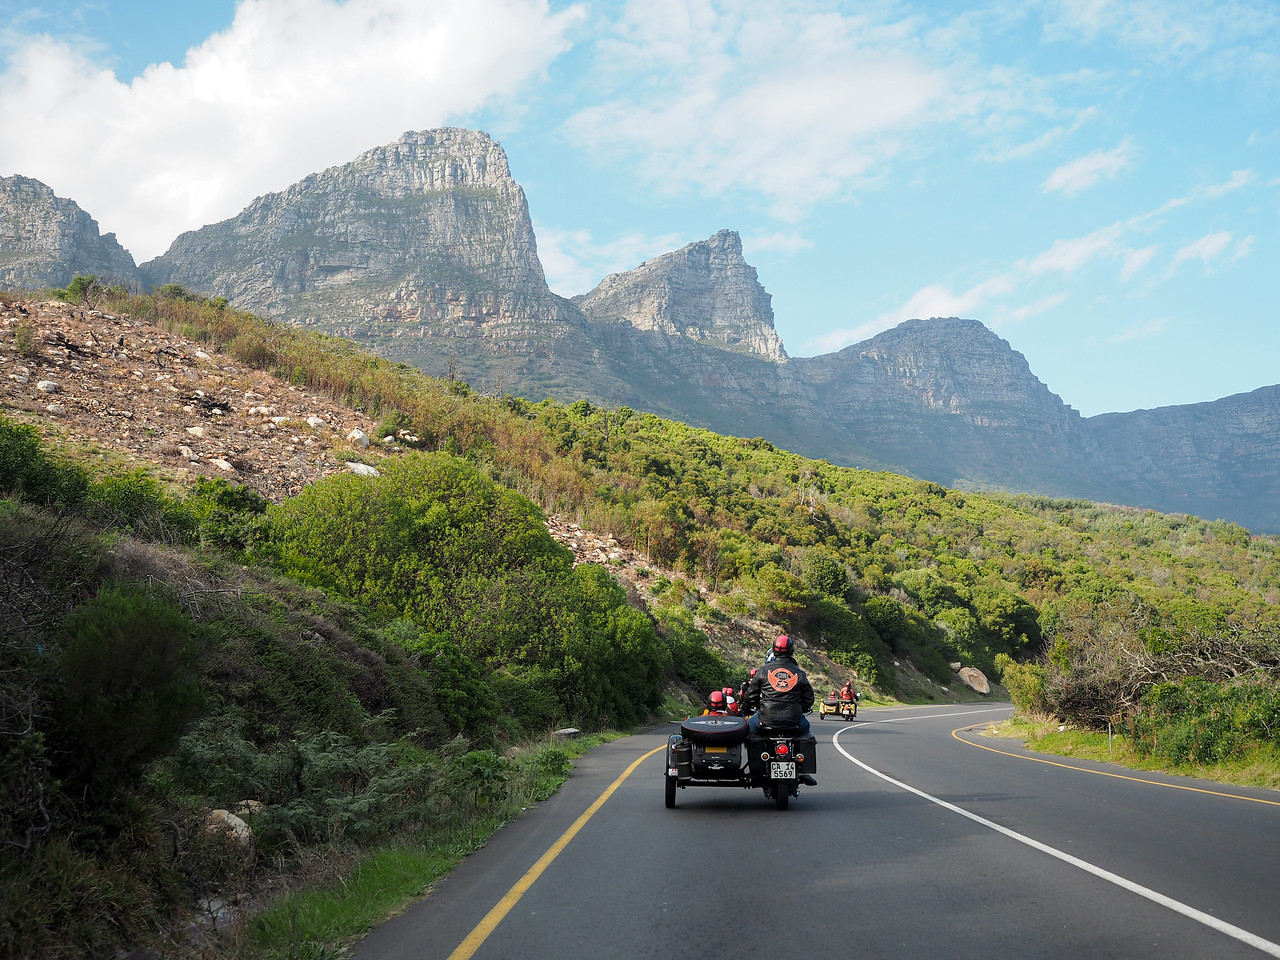 Sidecars in Cape Town, South Africa